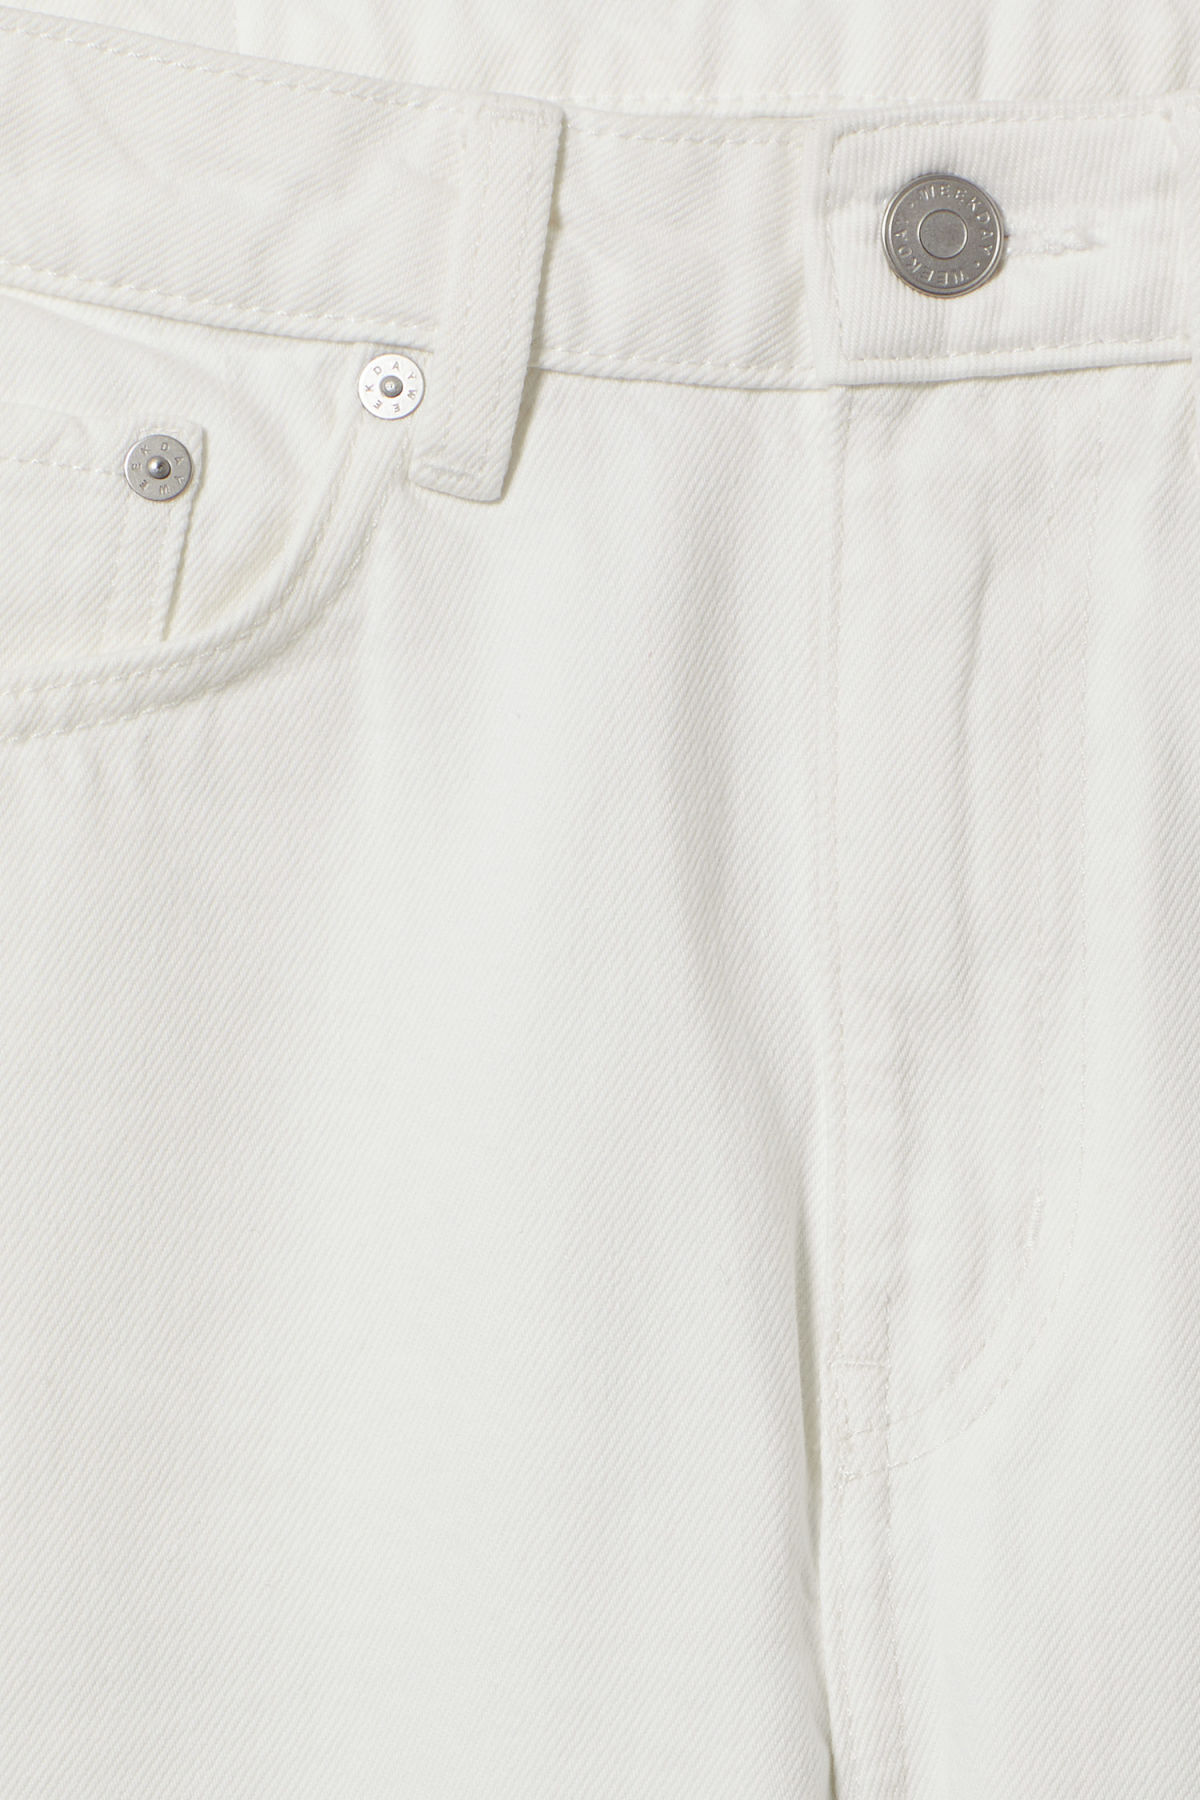 Detailed image of Weekday voyage loved white jeans in white